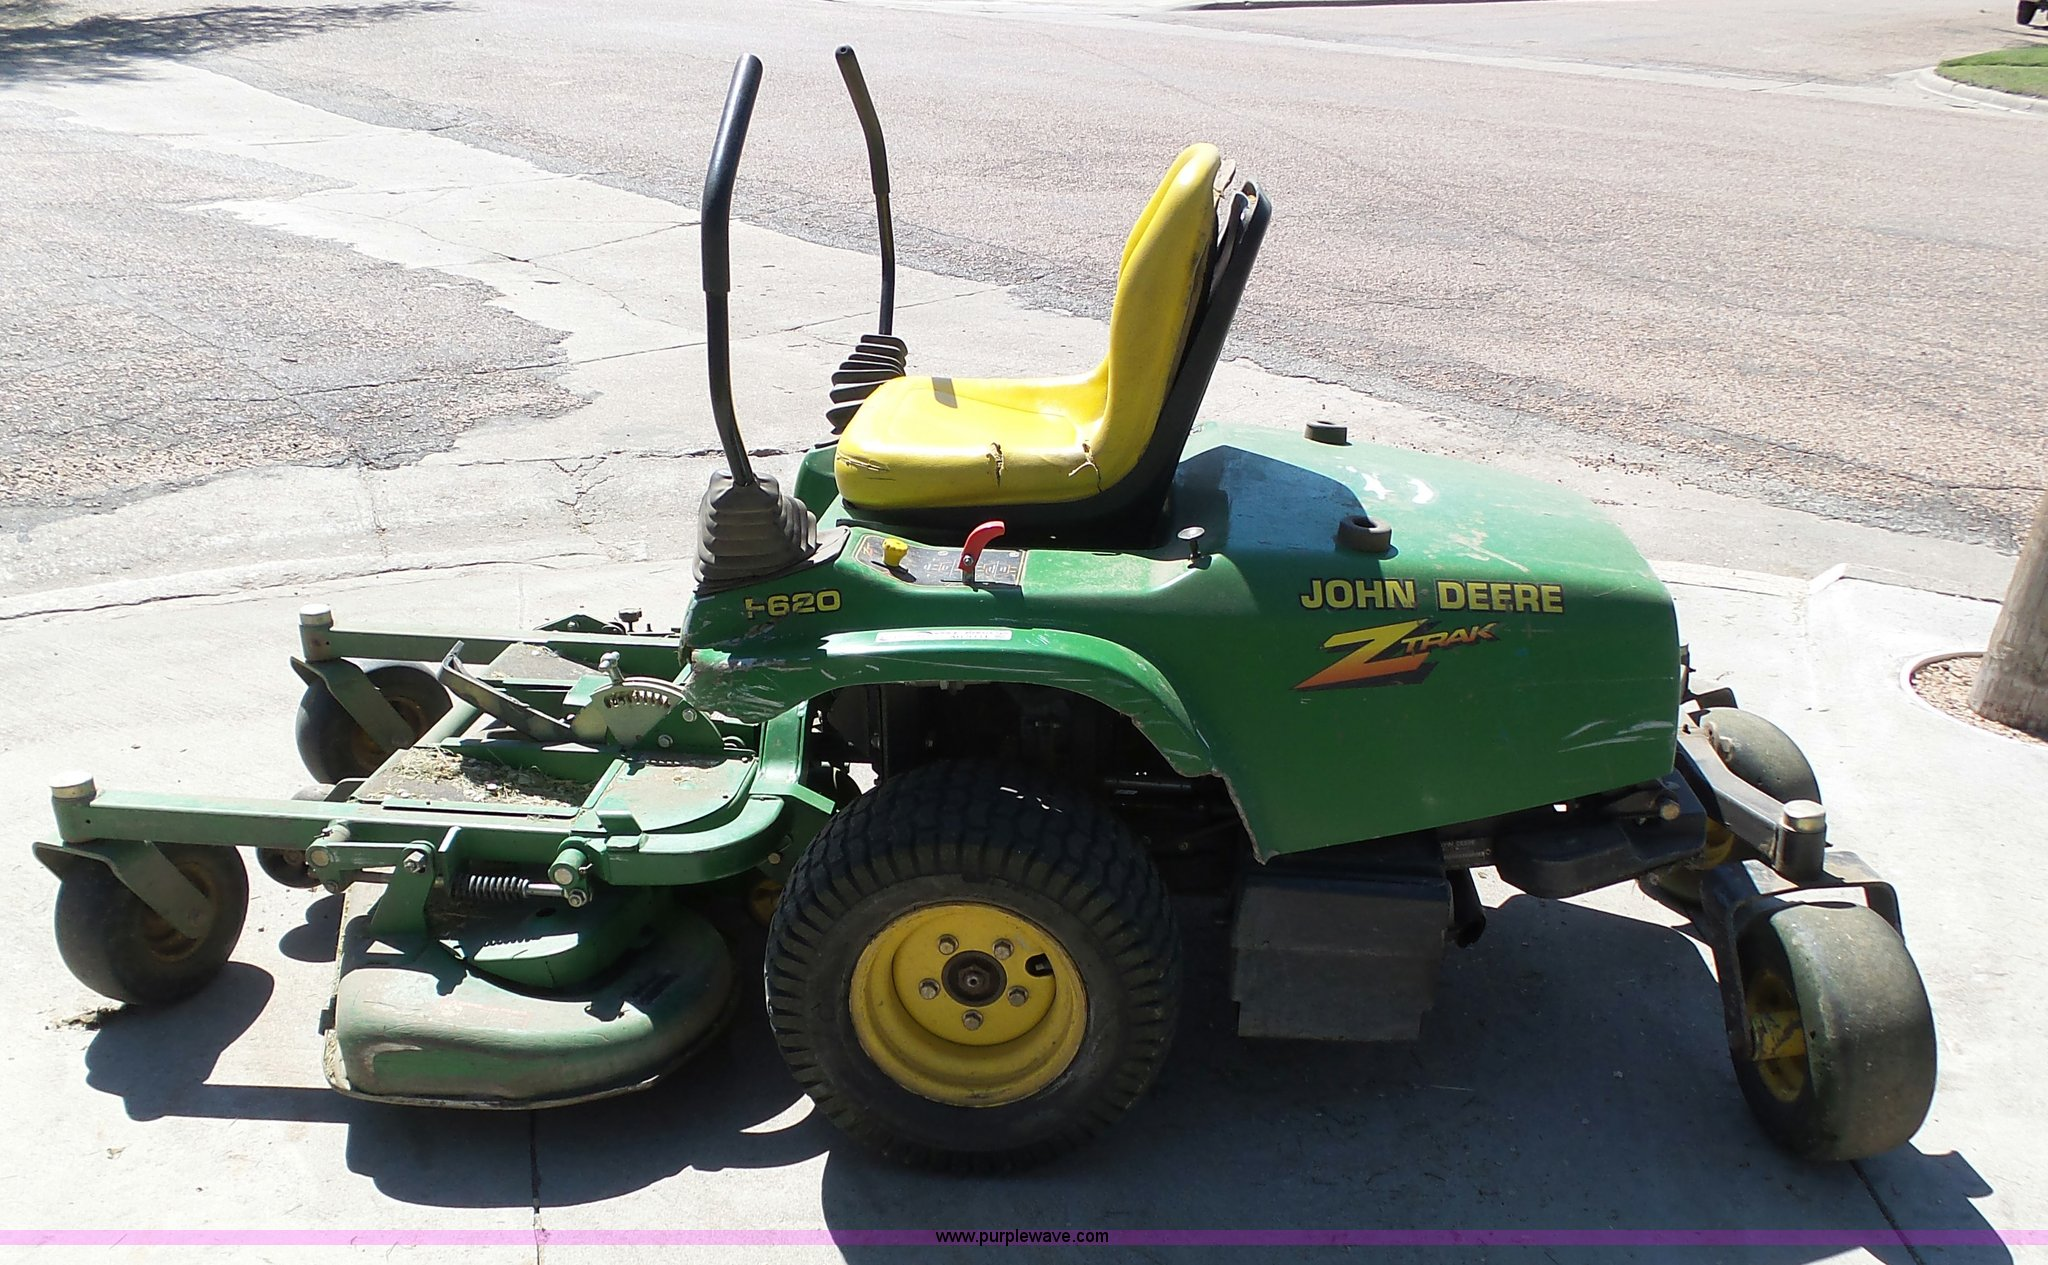 ... John Deere F620 Z-Trak ZTR lawn mower Full size in new window ...